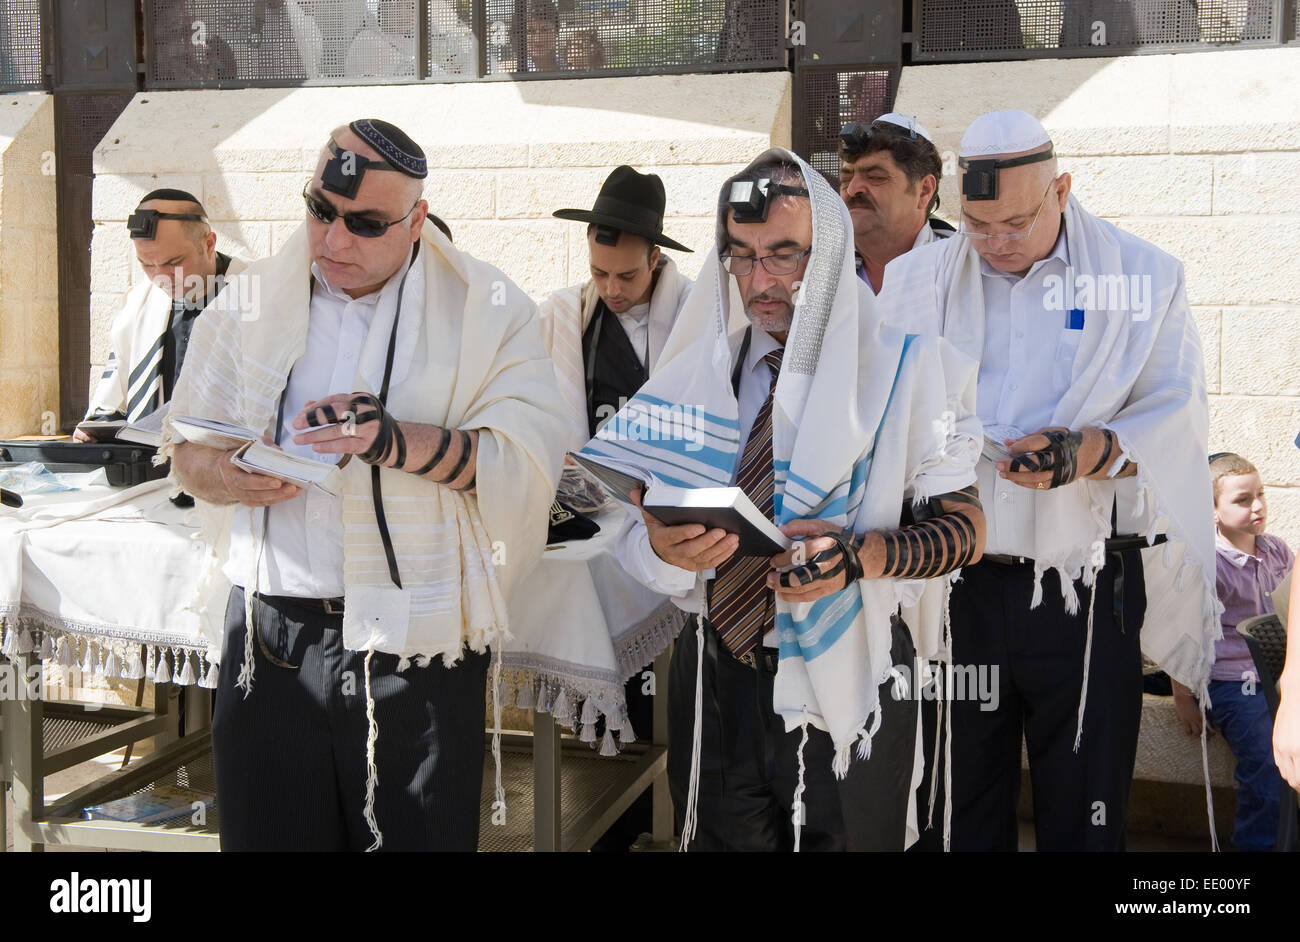 Jews are reading in the torah during a Bar Mitzvah ritual at the Wailing wall in Jerusalem - Stock Image